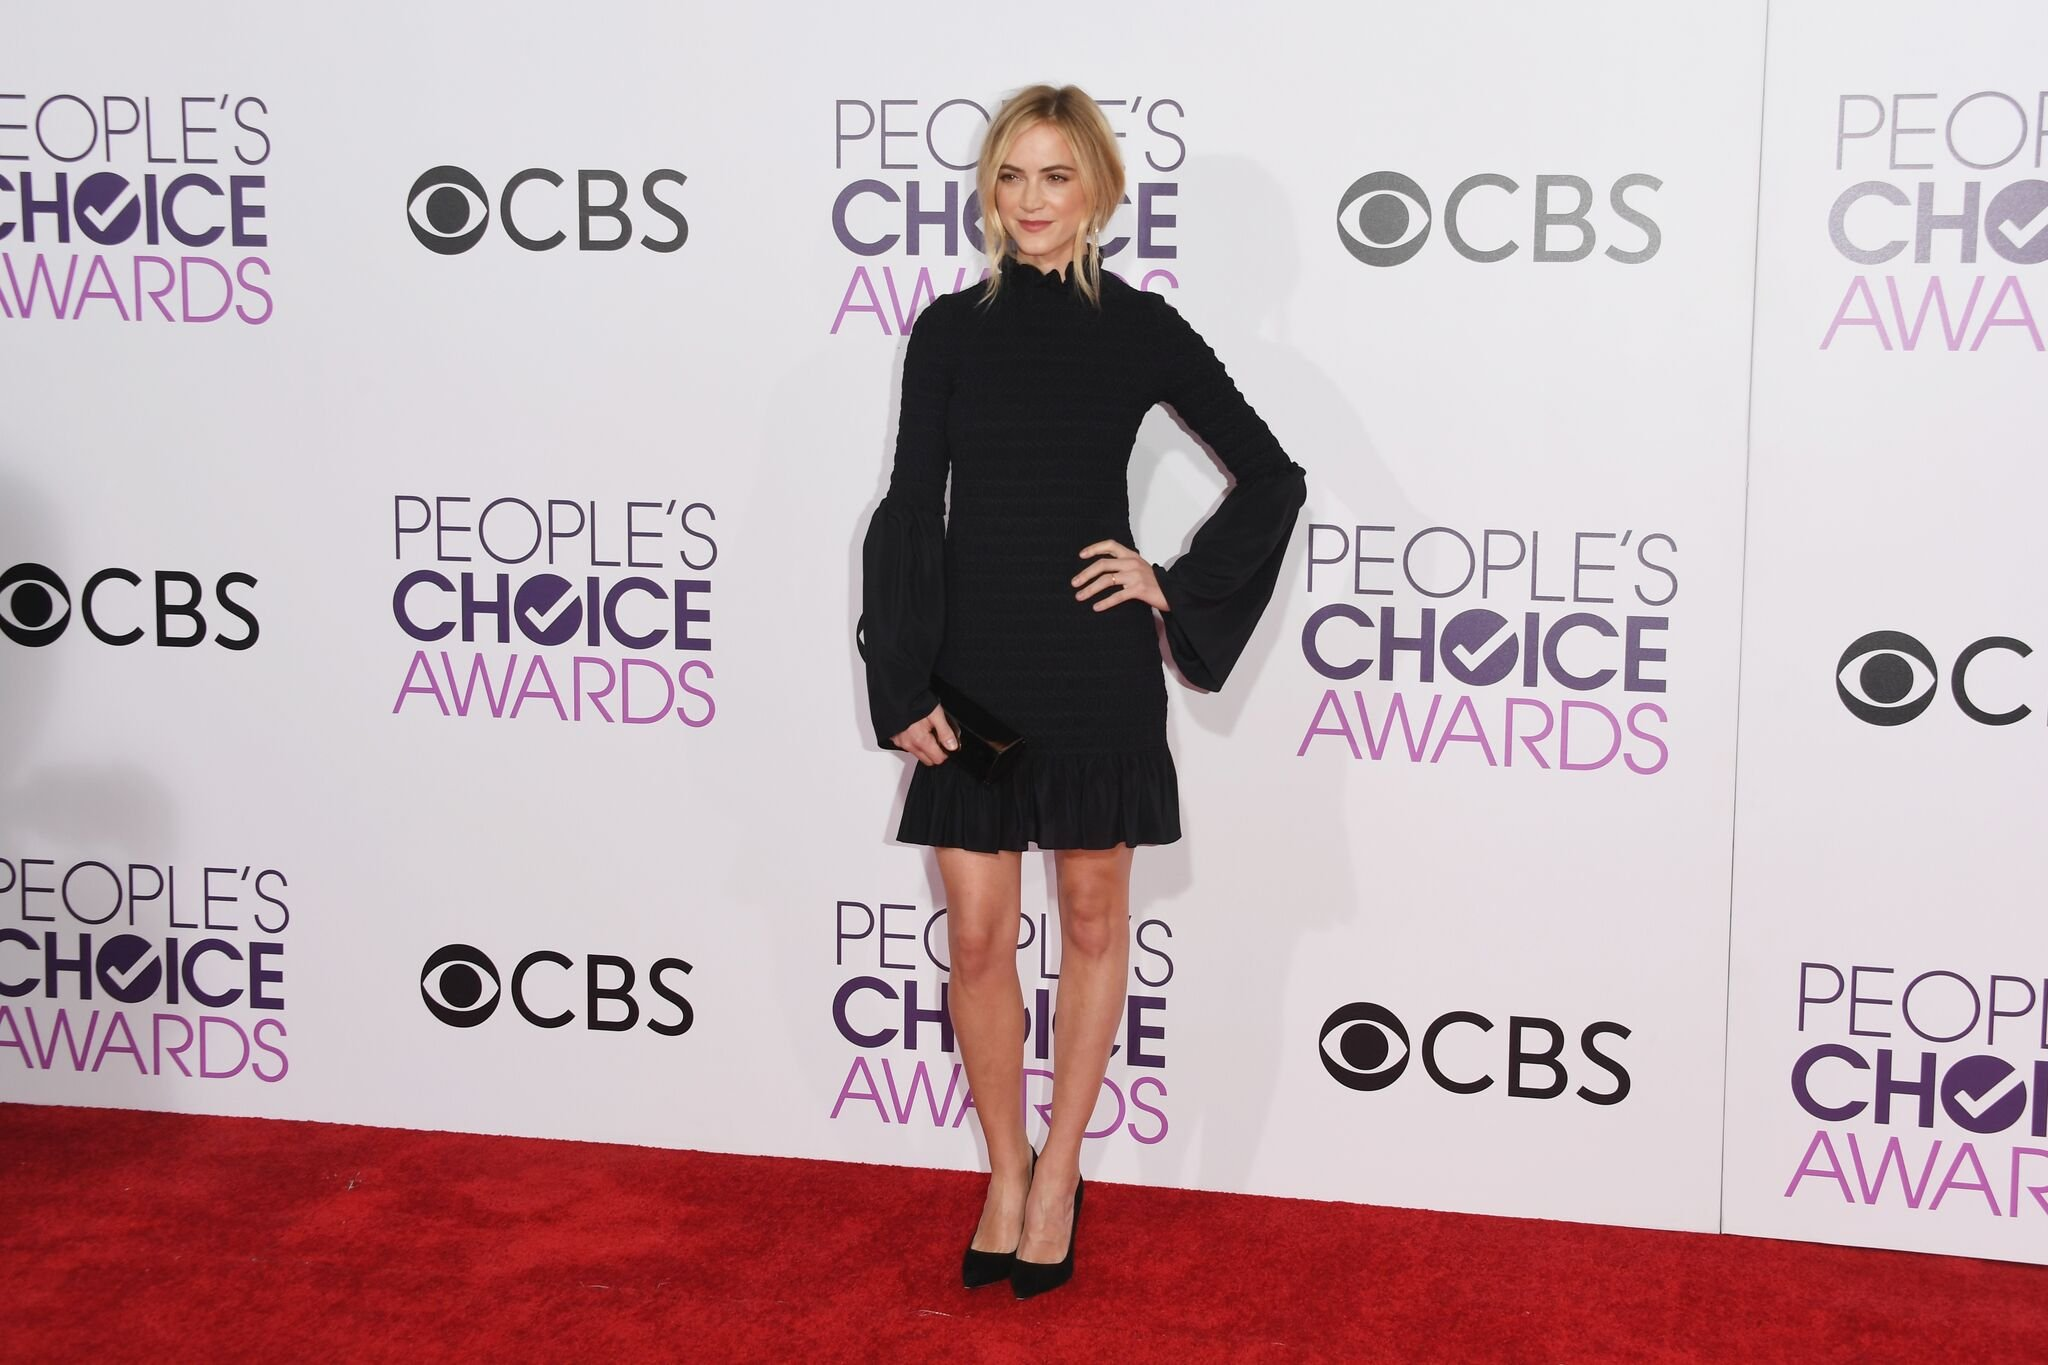 L'actrice Emily Wickersham assiste aux People's Choice Awards 2017 | Getty Images